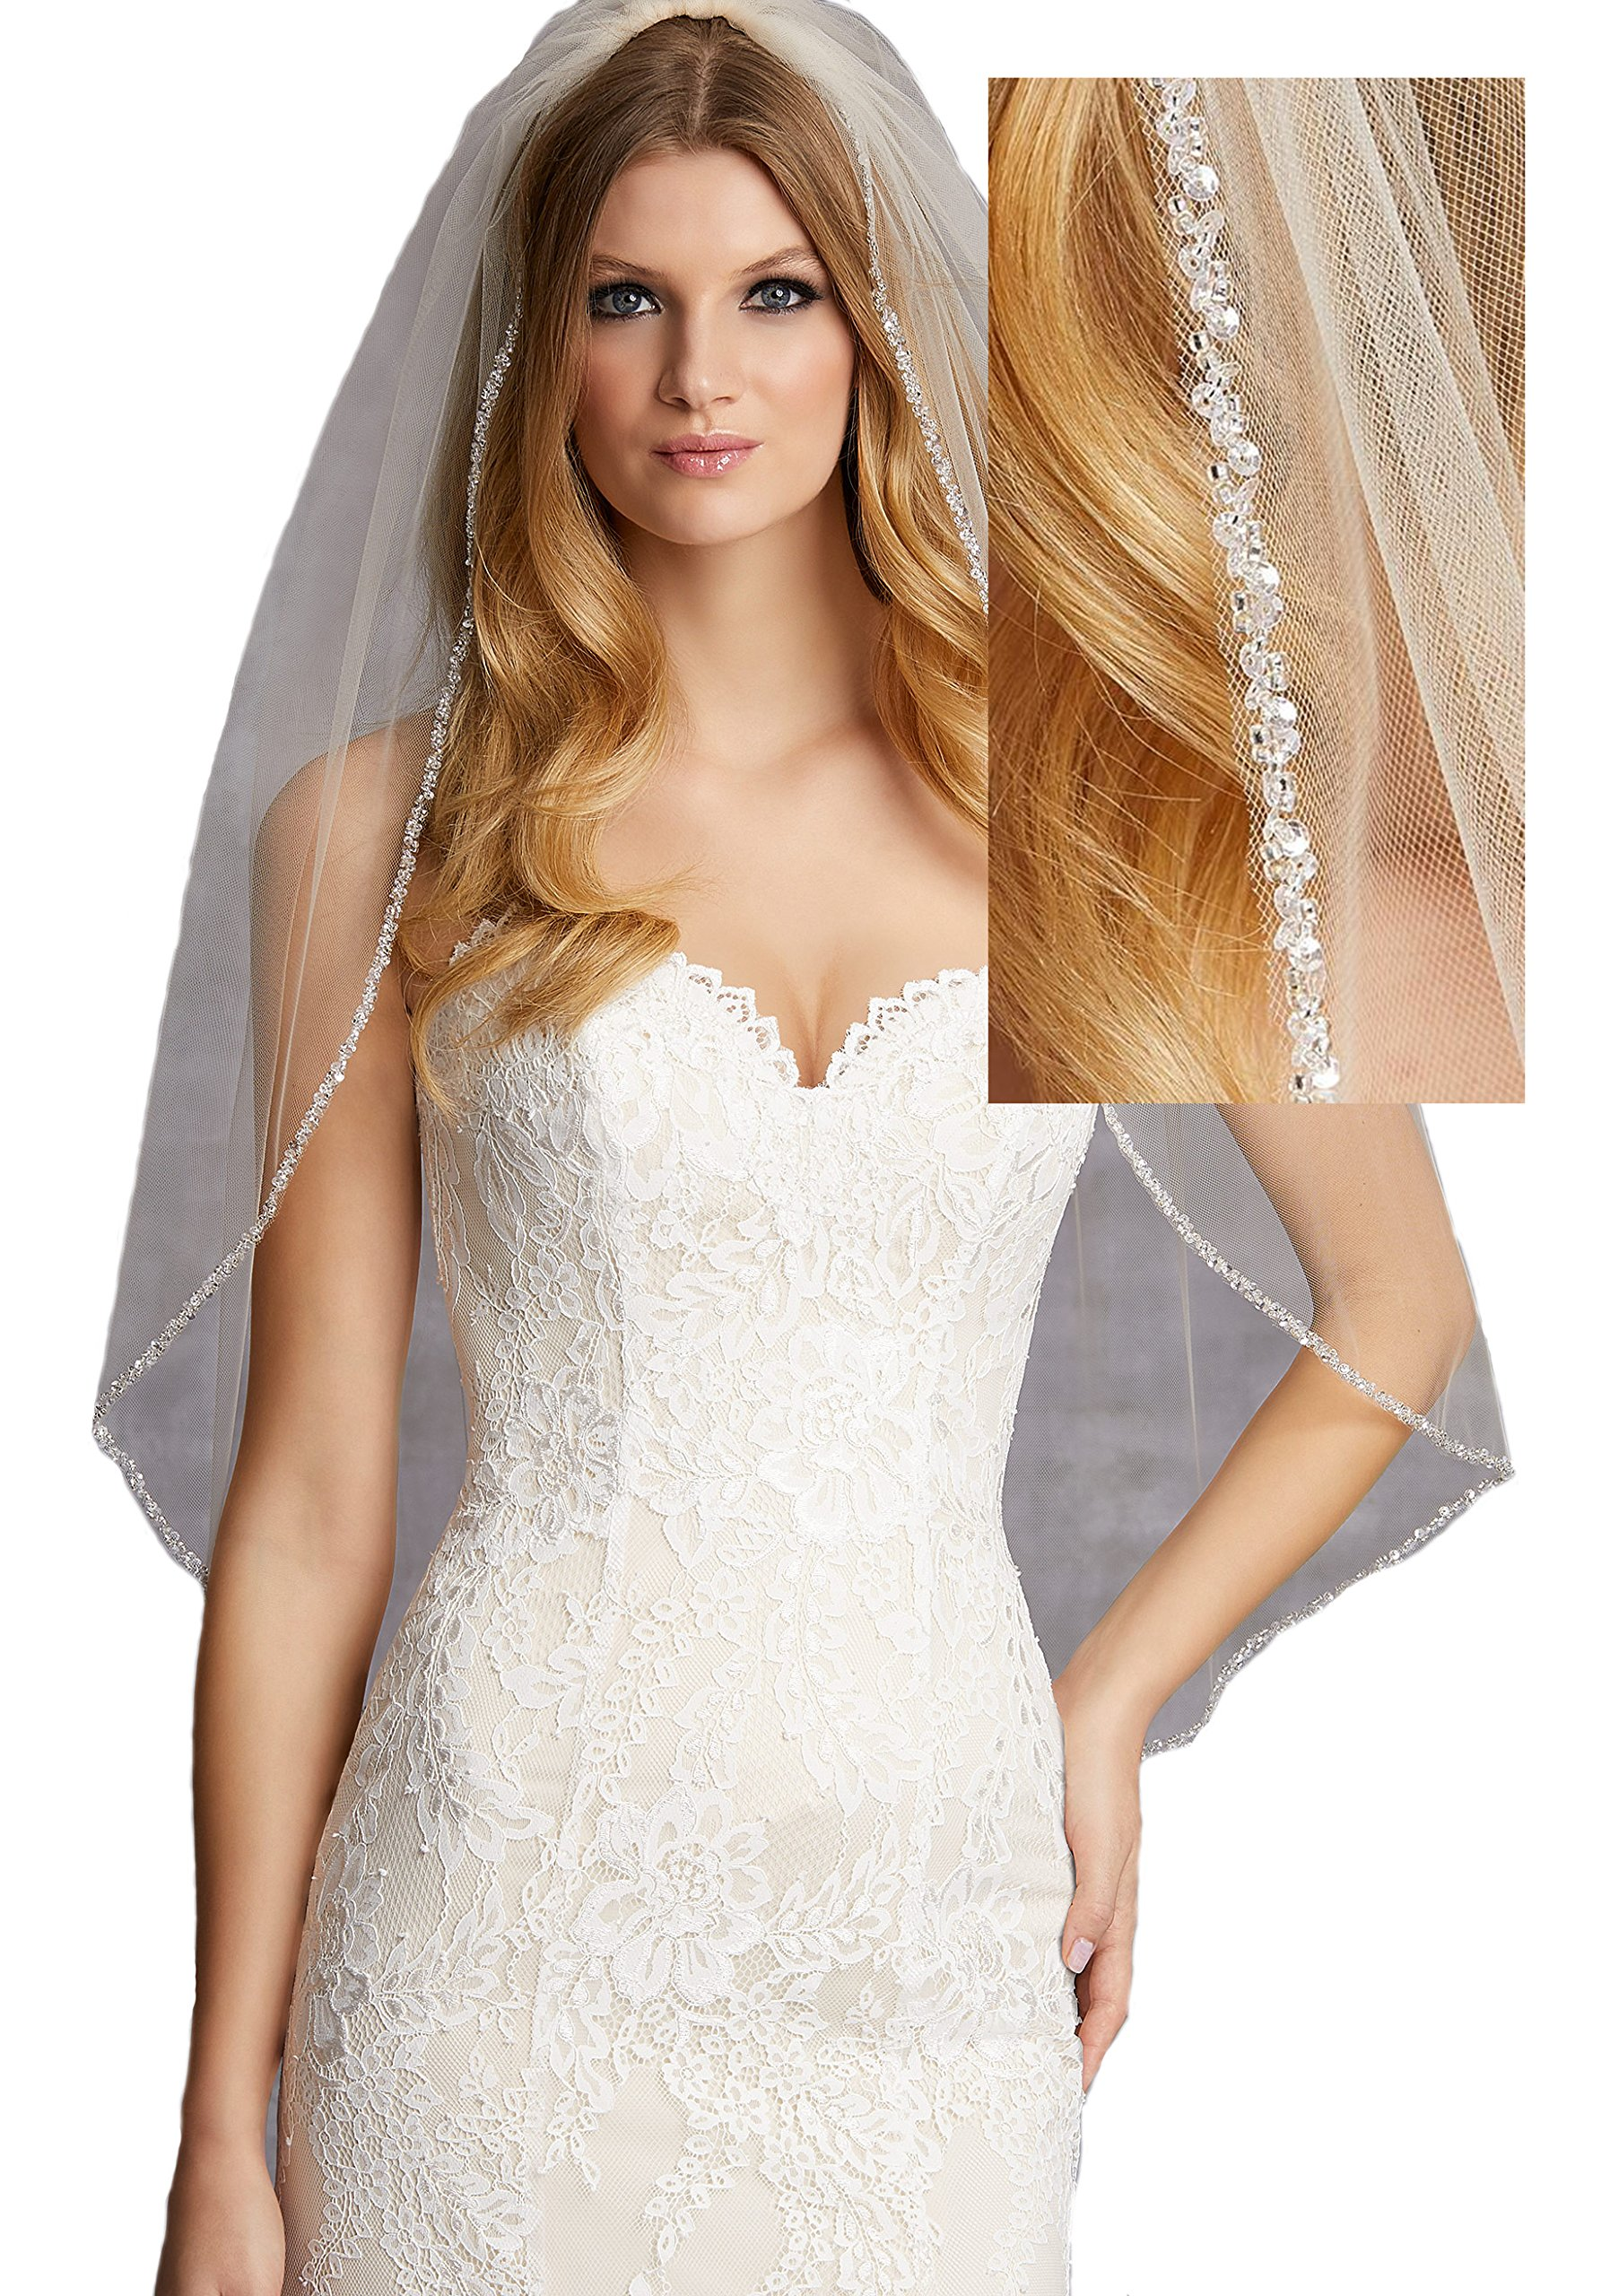 Passat Ivory 1T Elbow/WaistBridal Veil Edged with Clear Beads and Sequins VL-1025